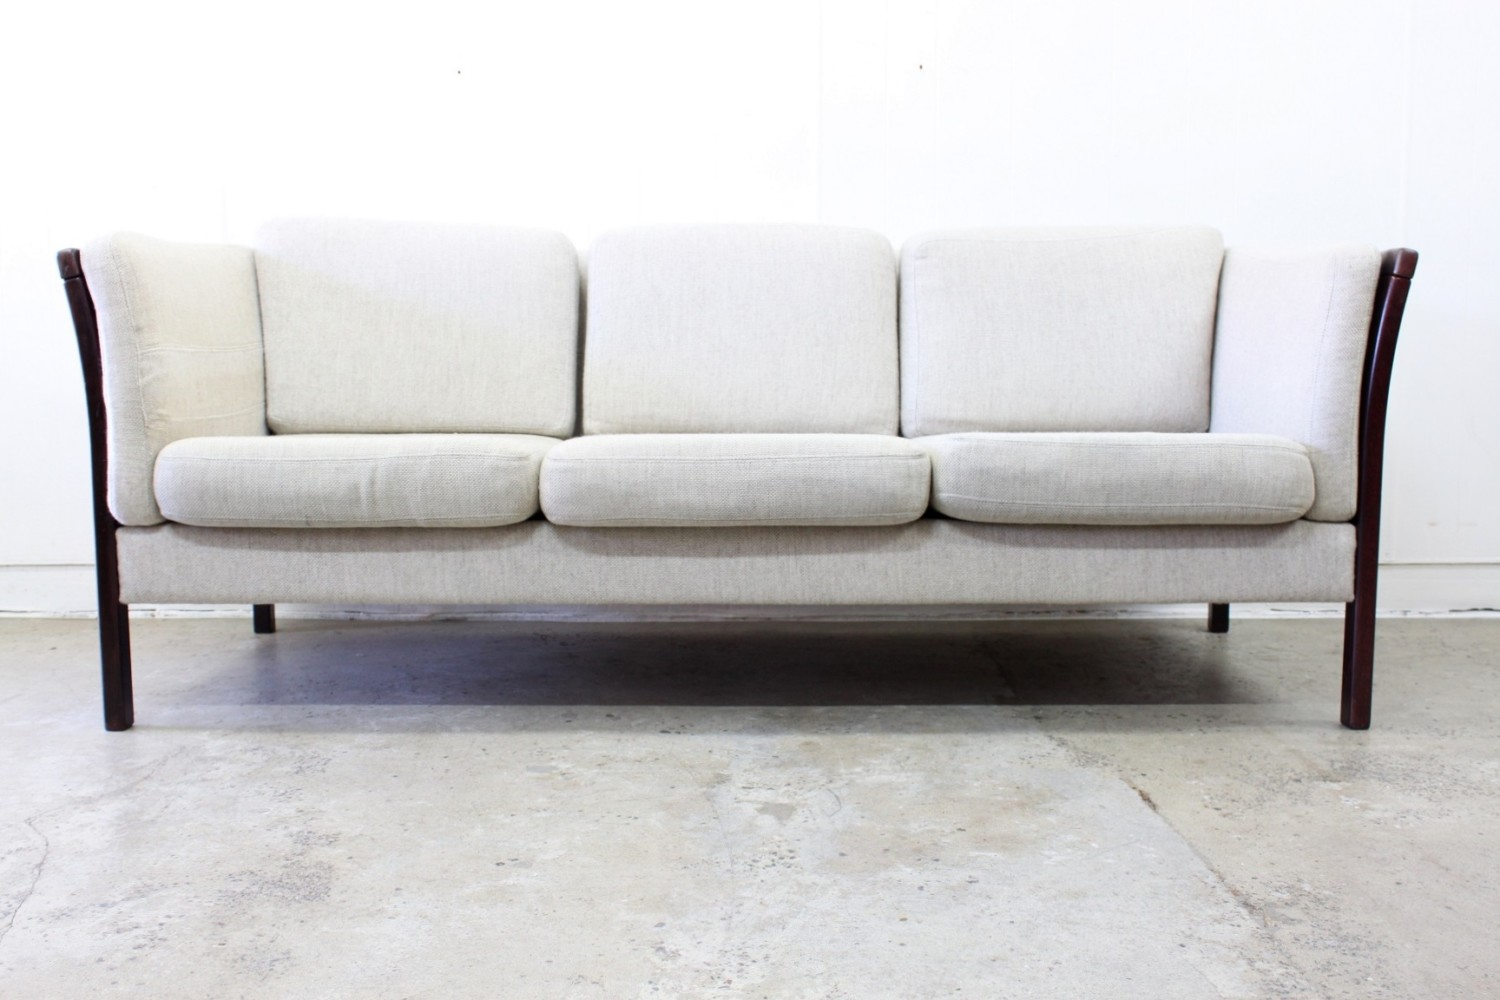 3 + 2 Seater by Stouby Denmark